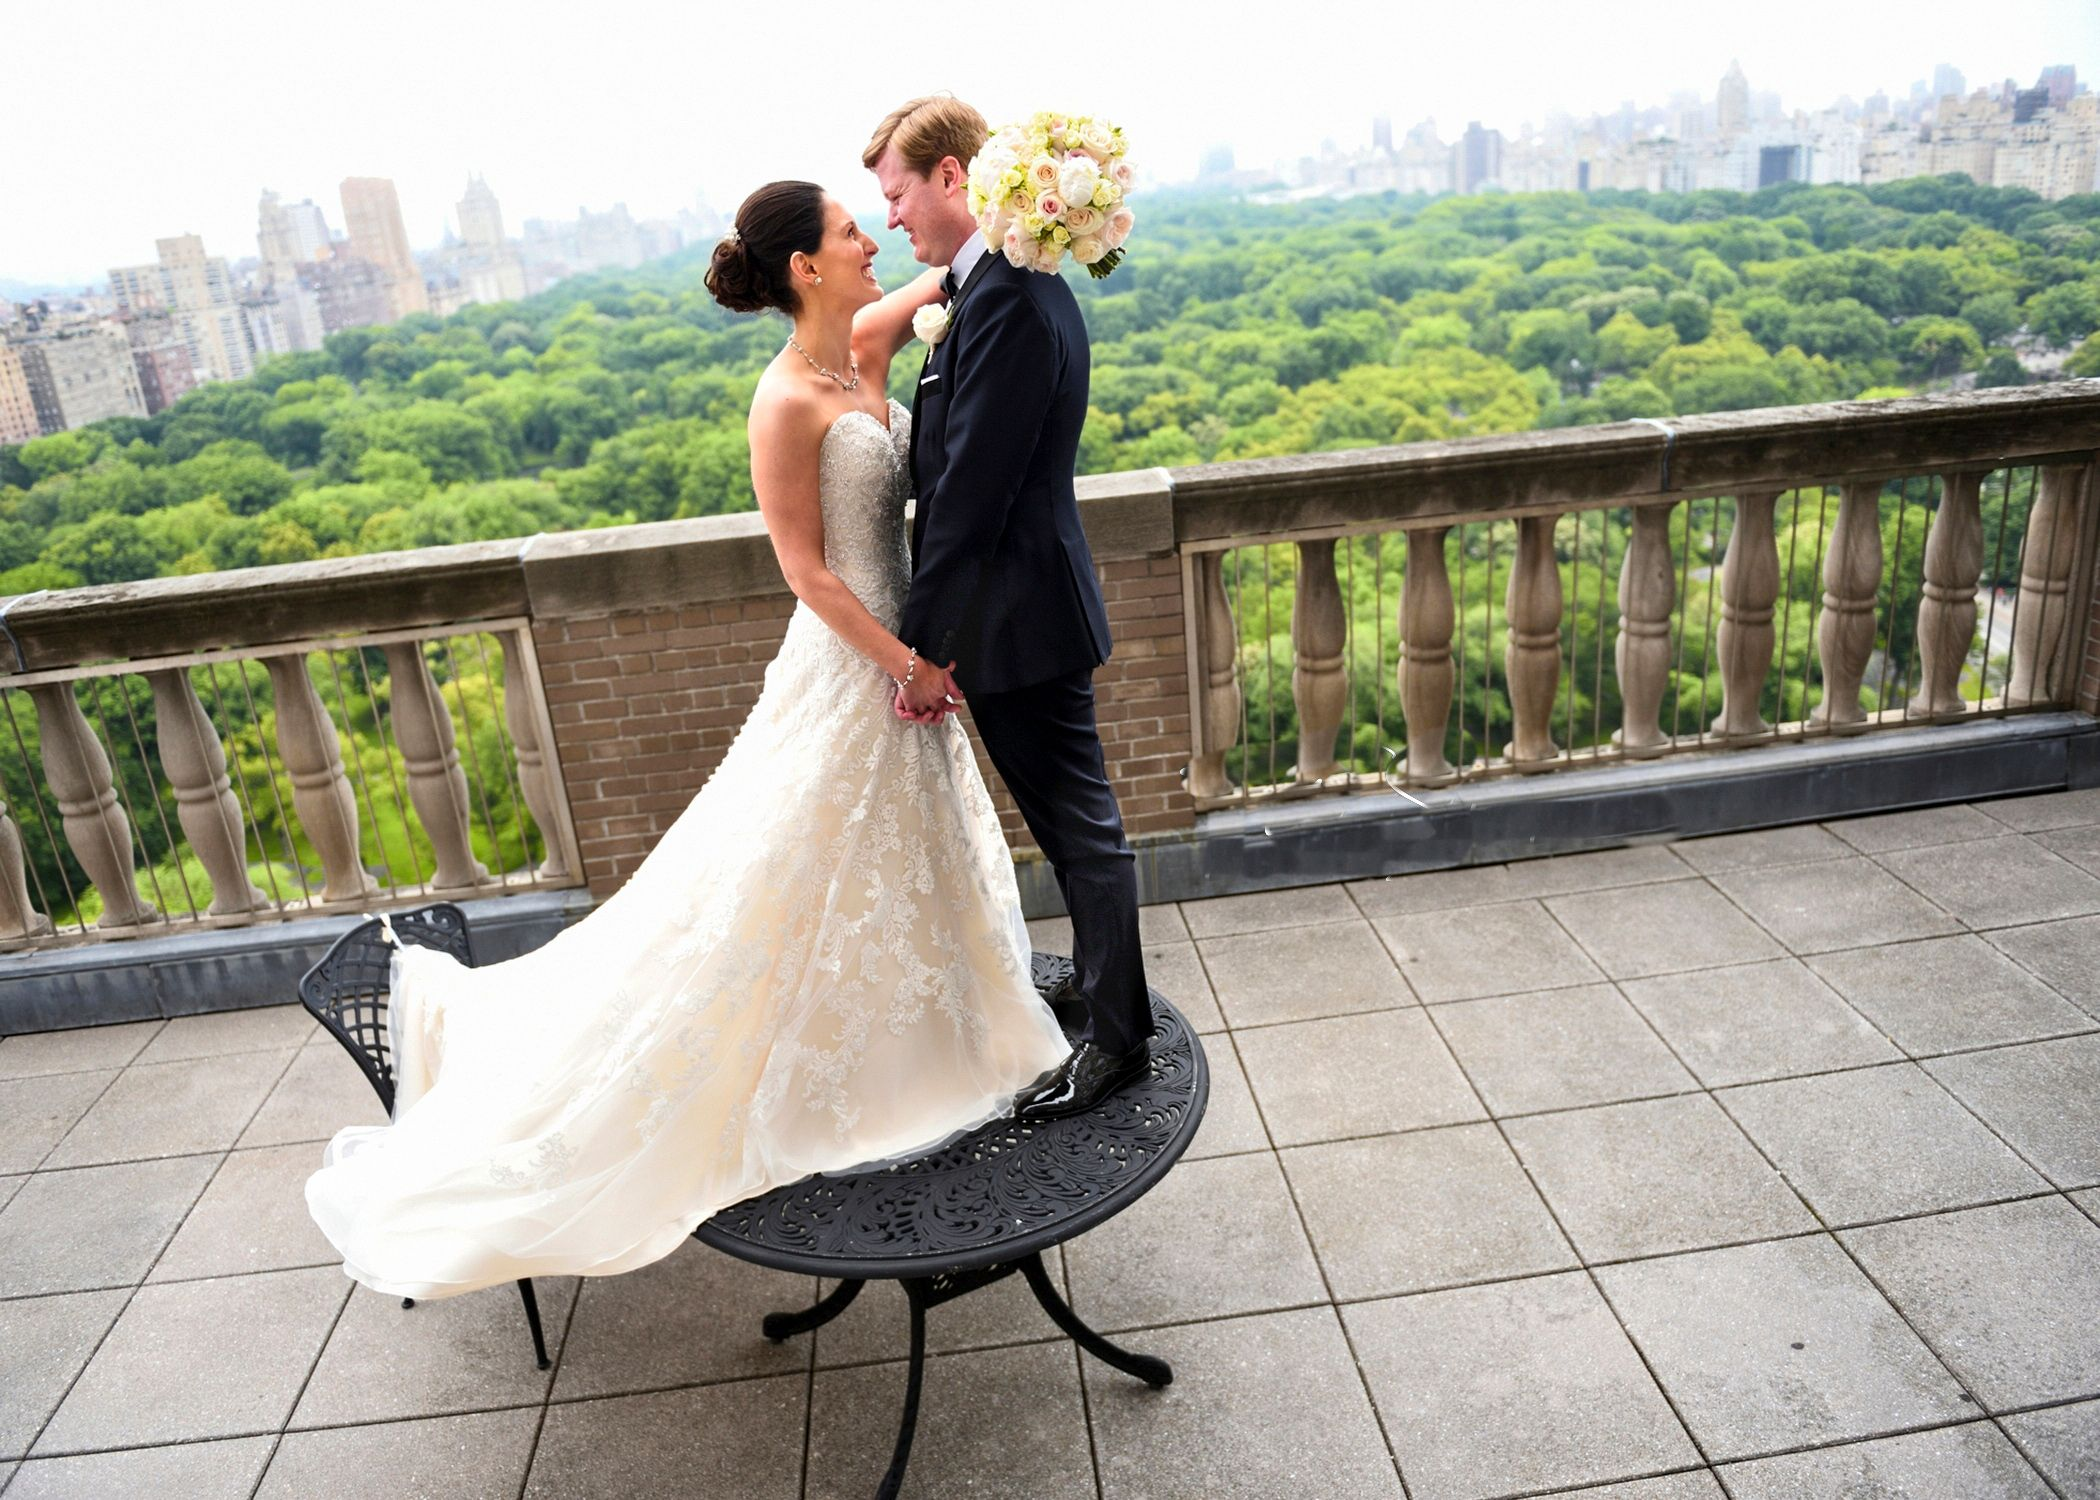 A Central Park Wedding 'First Look'